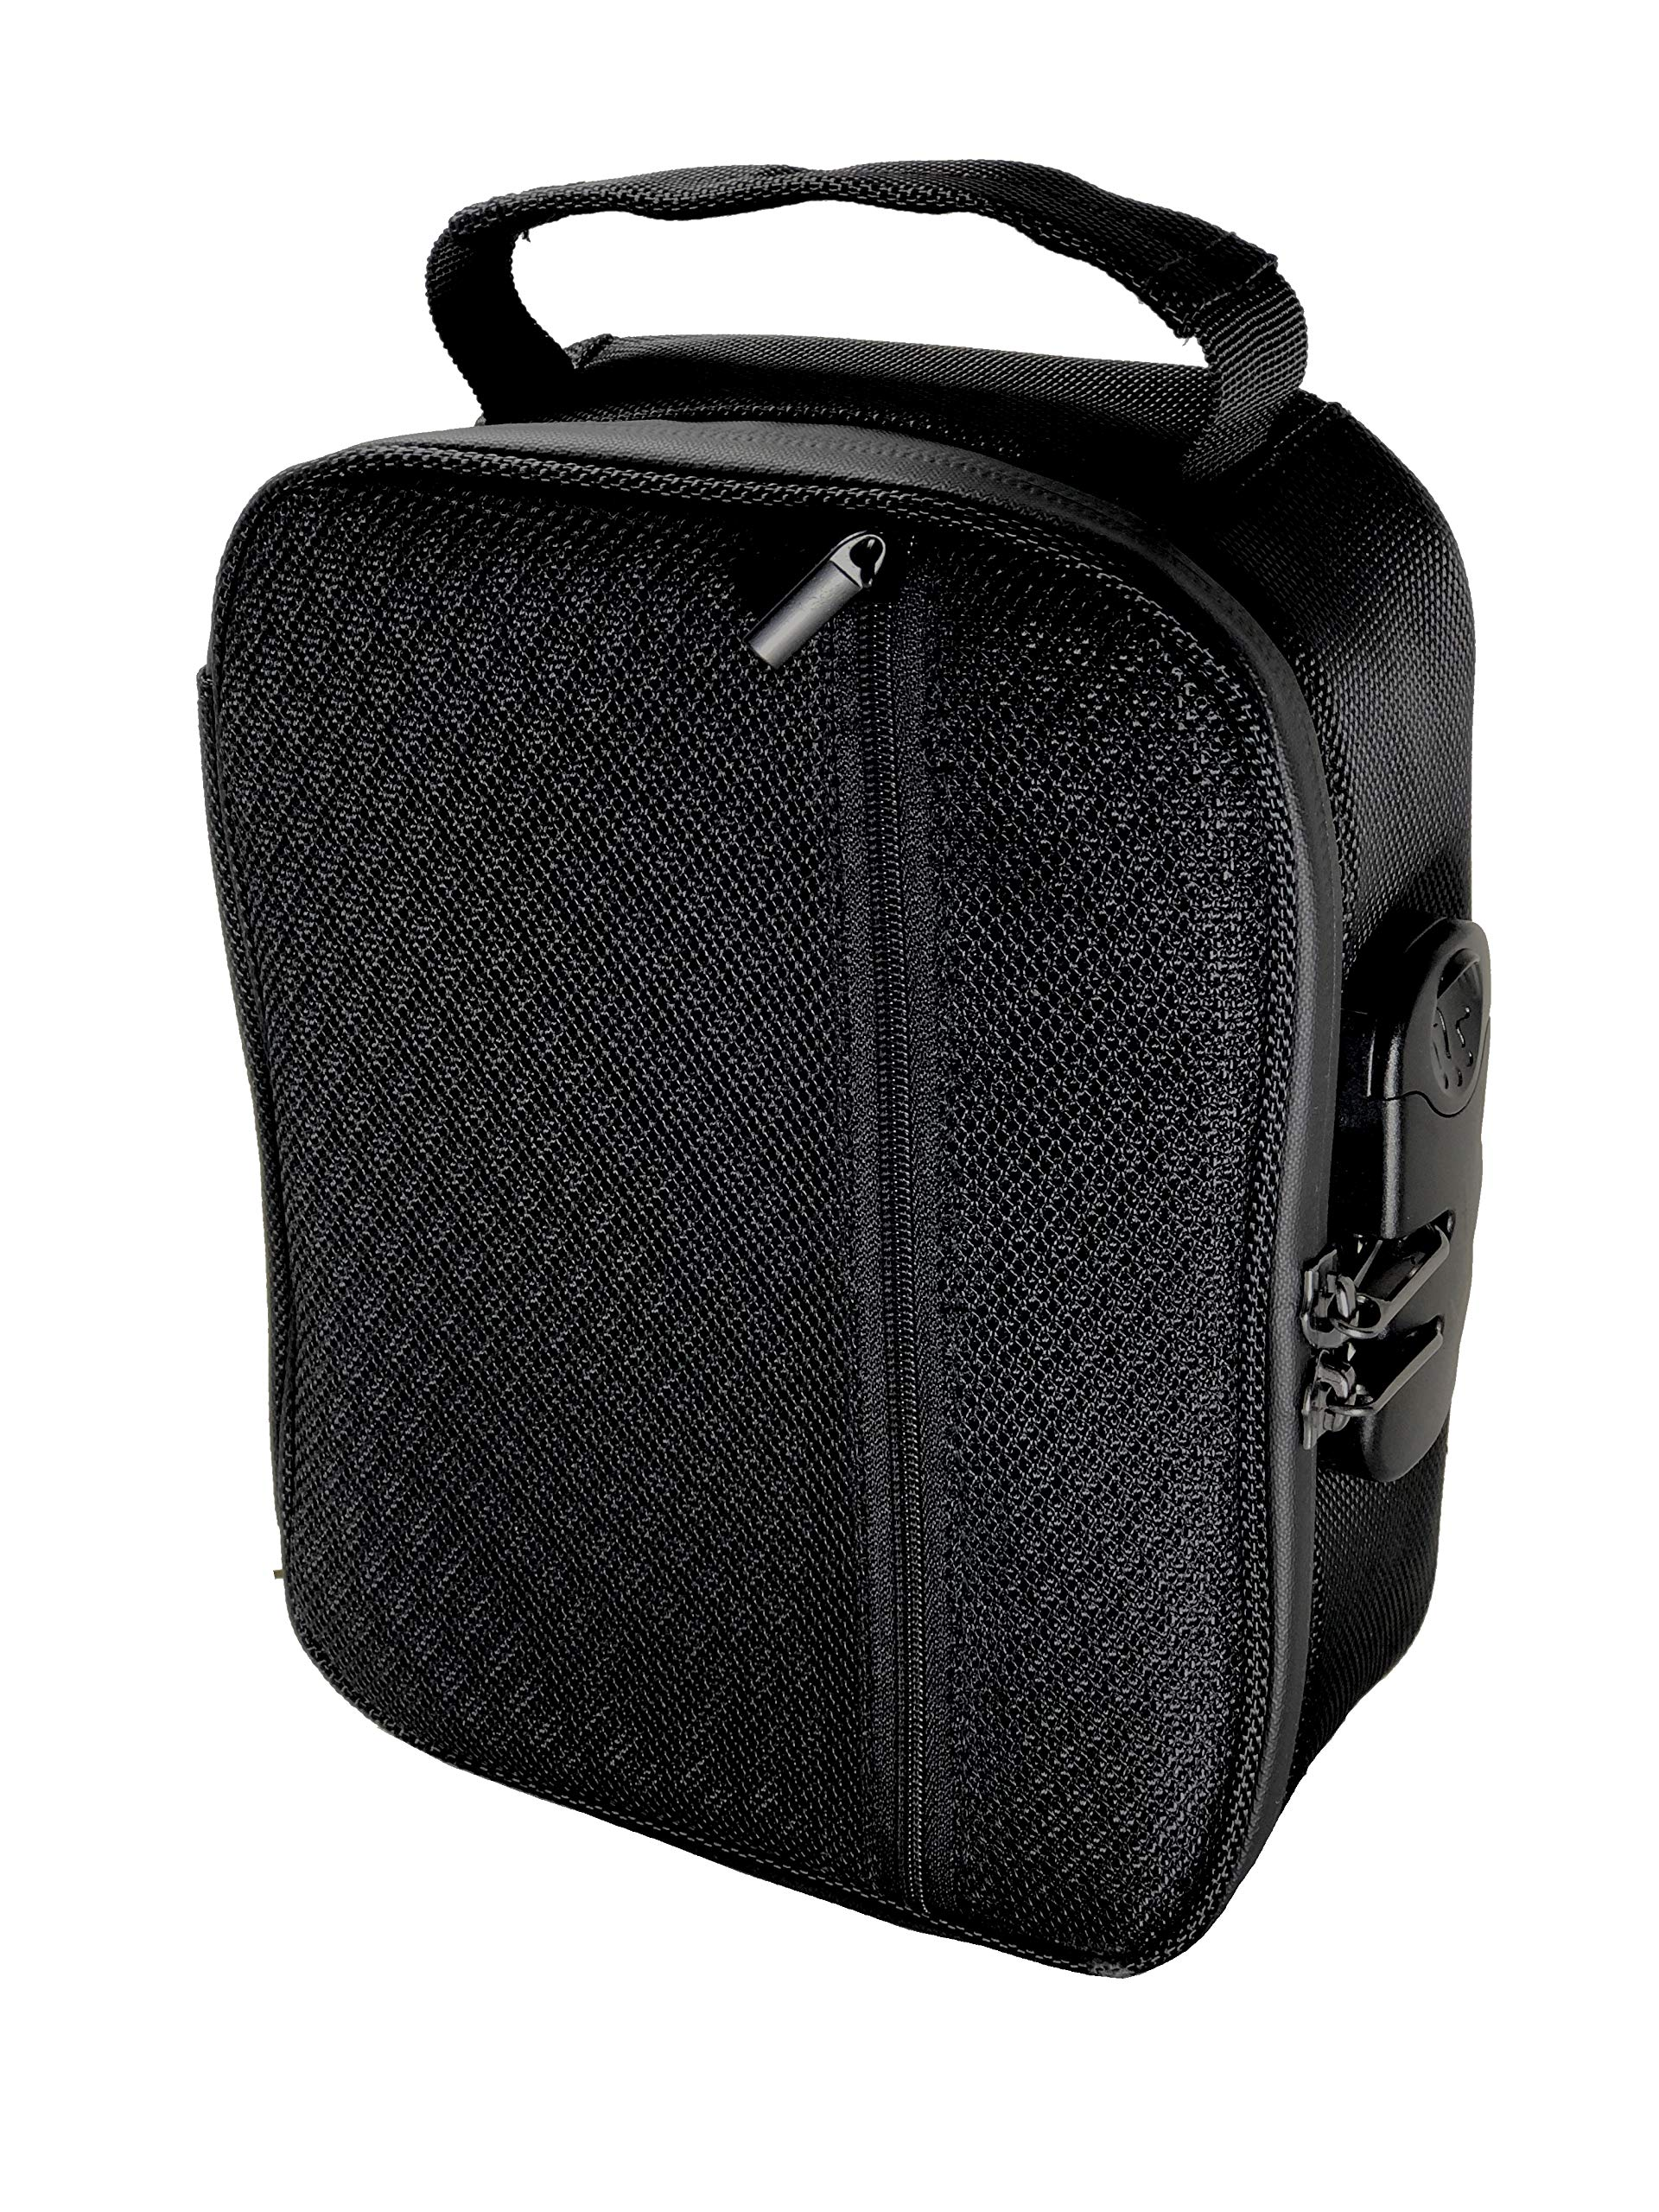 Sale - Smell Proof Bag - Odor Concealing - Protect Your Items with Built-in Combo Lock